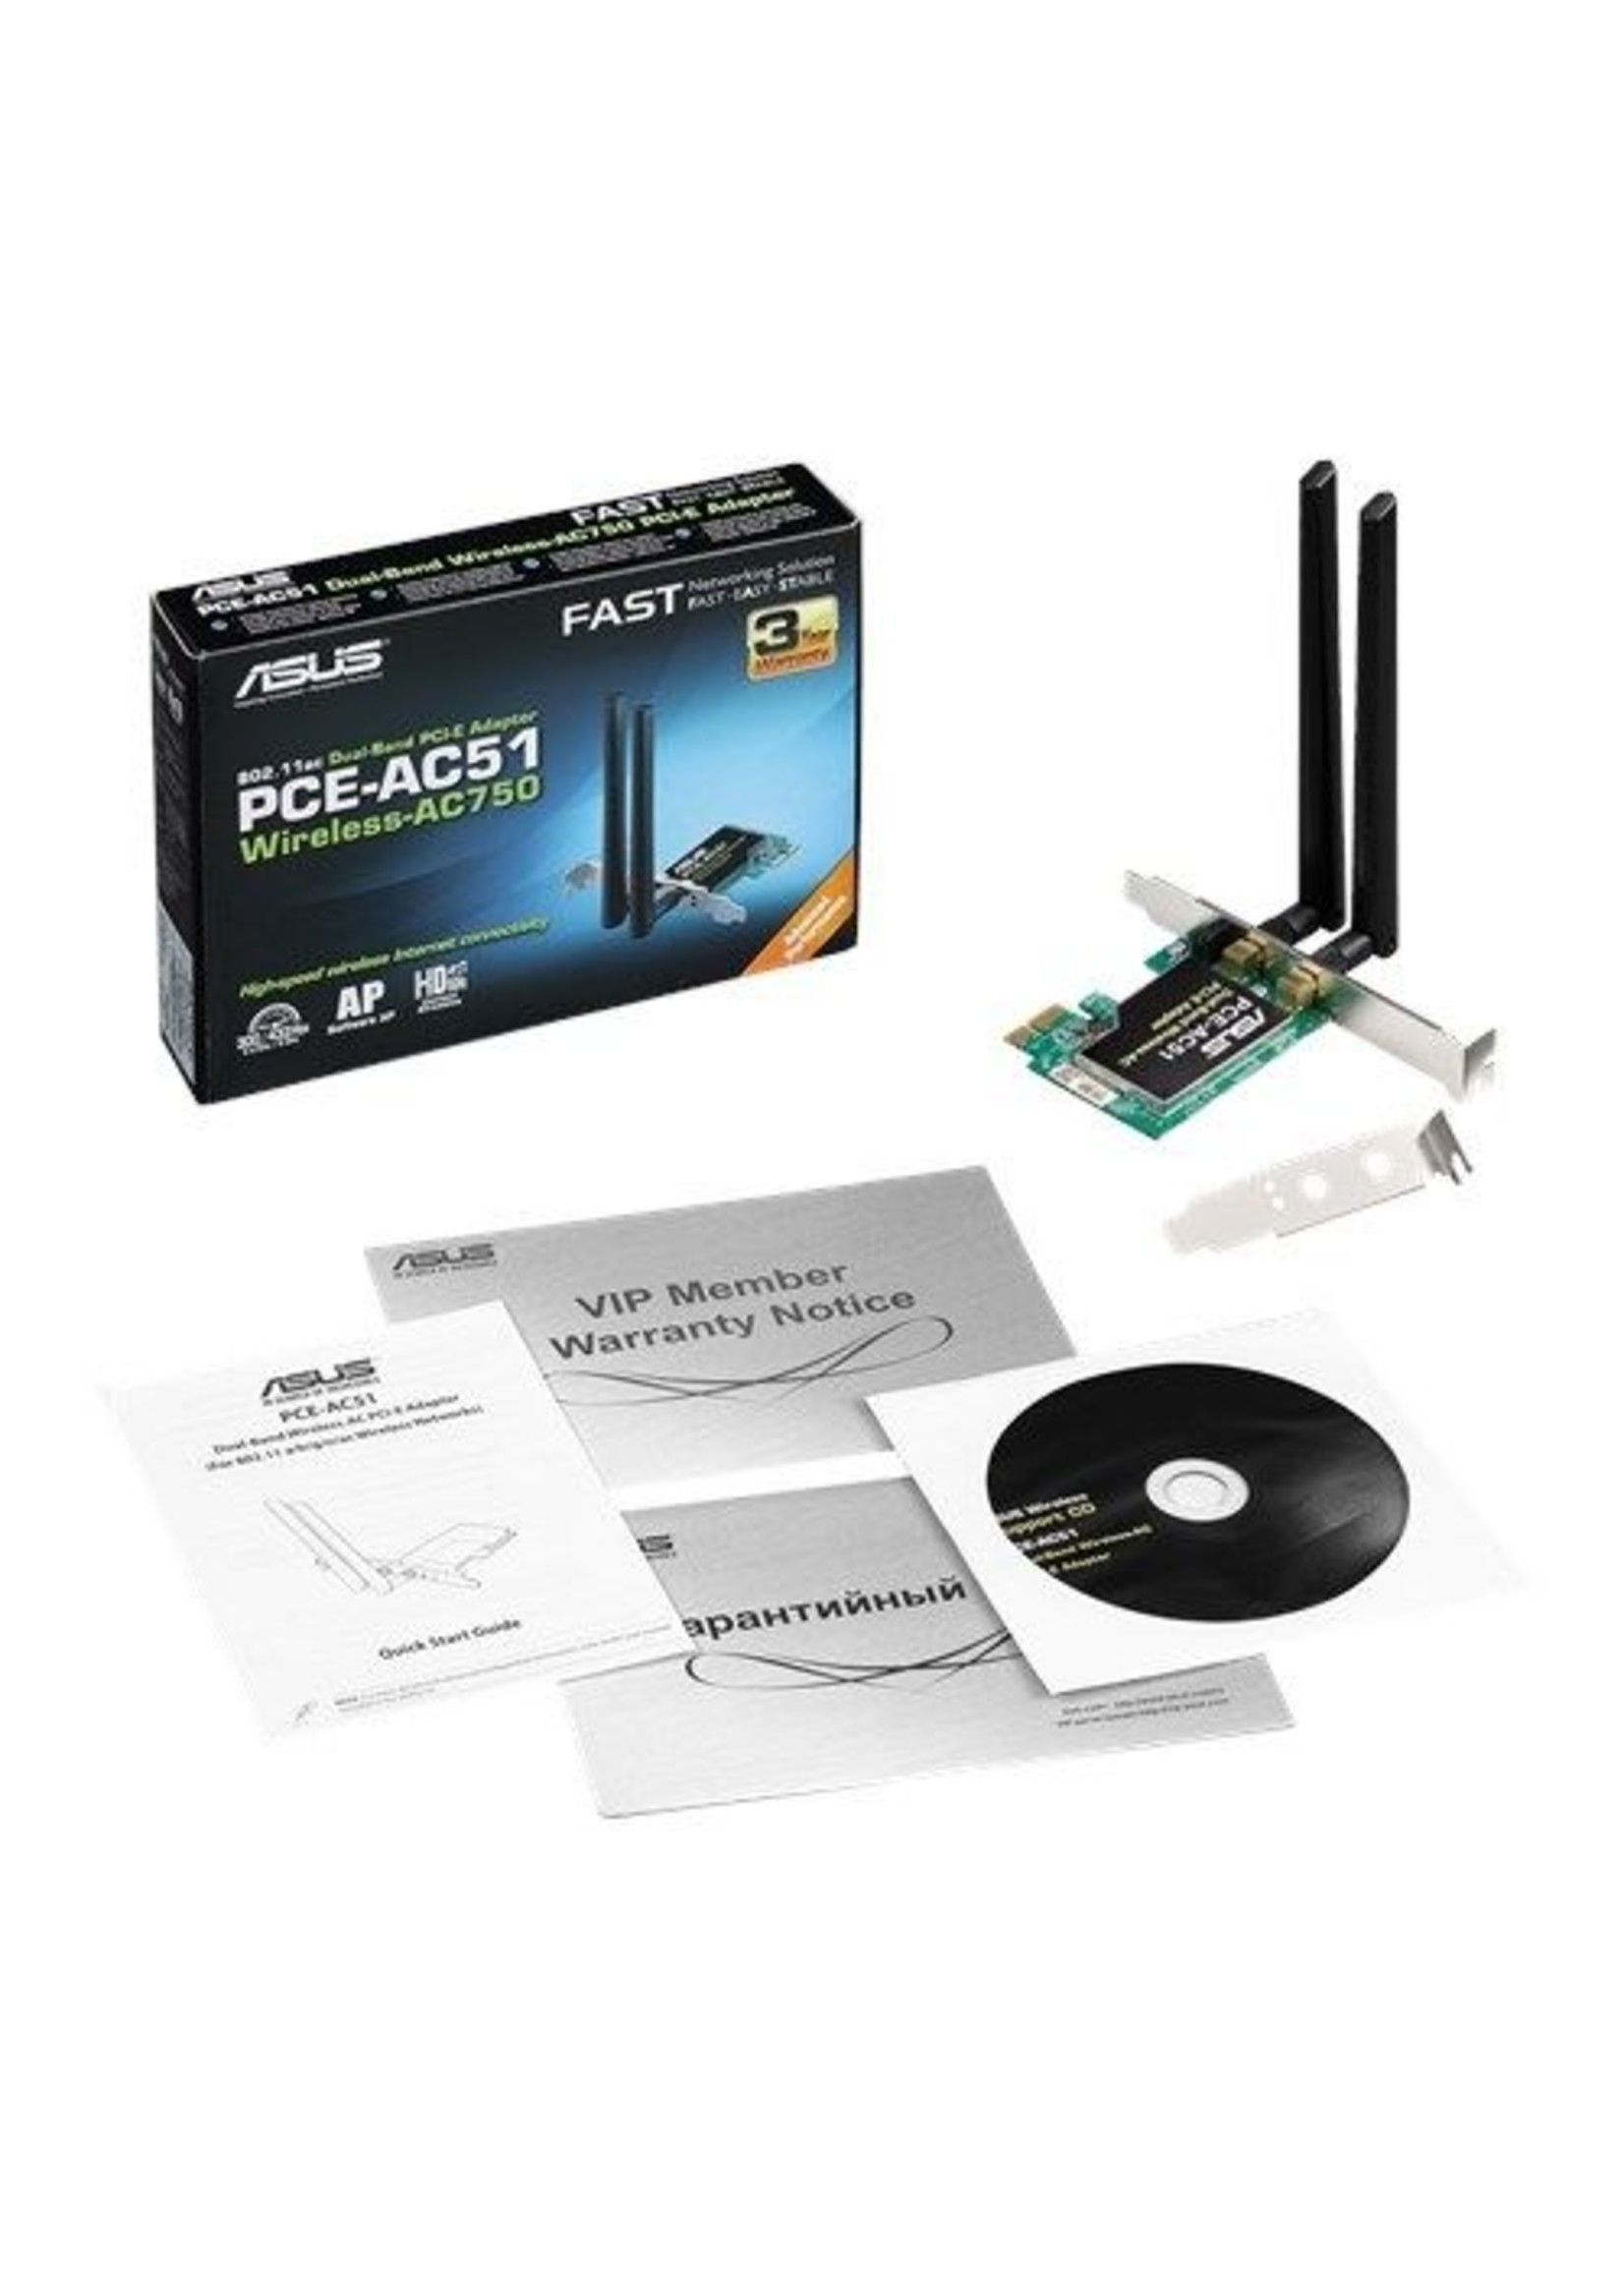 Asus ASUS PCE-AC51 Wireless-AC750 Dual-band PCI-E Adapter